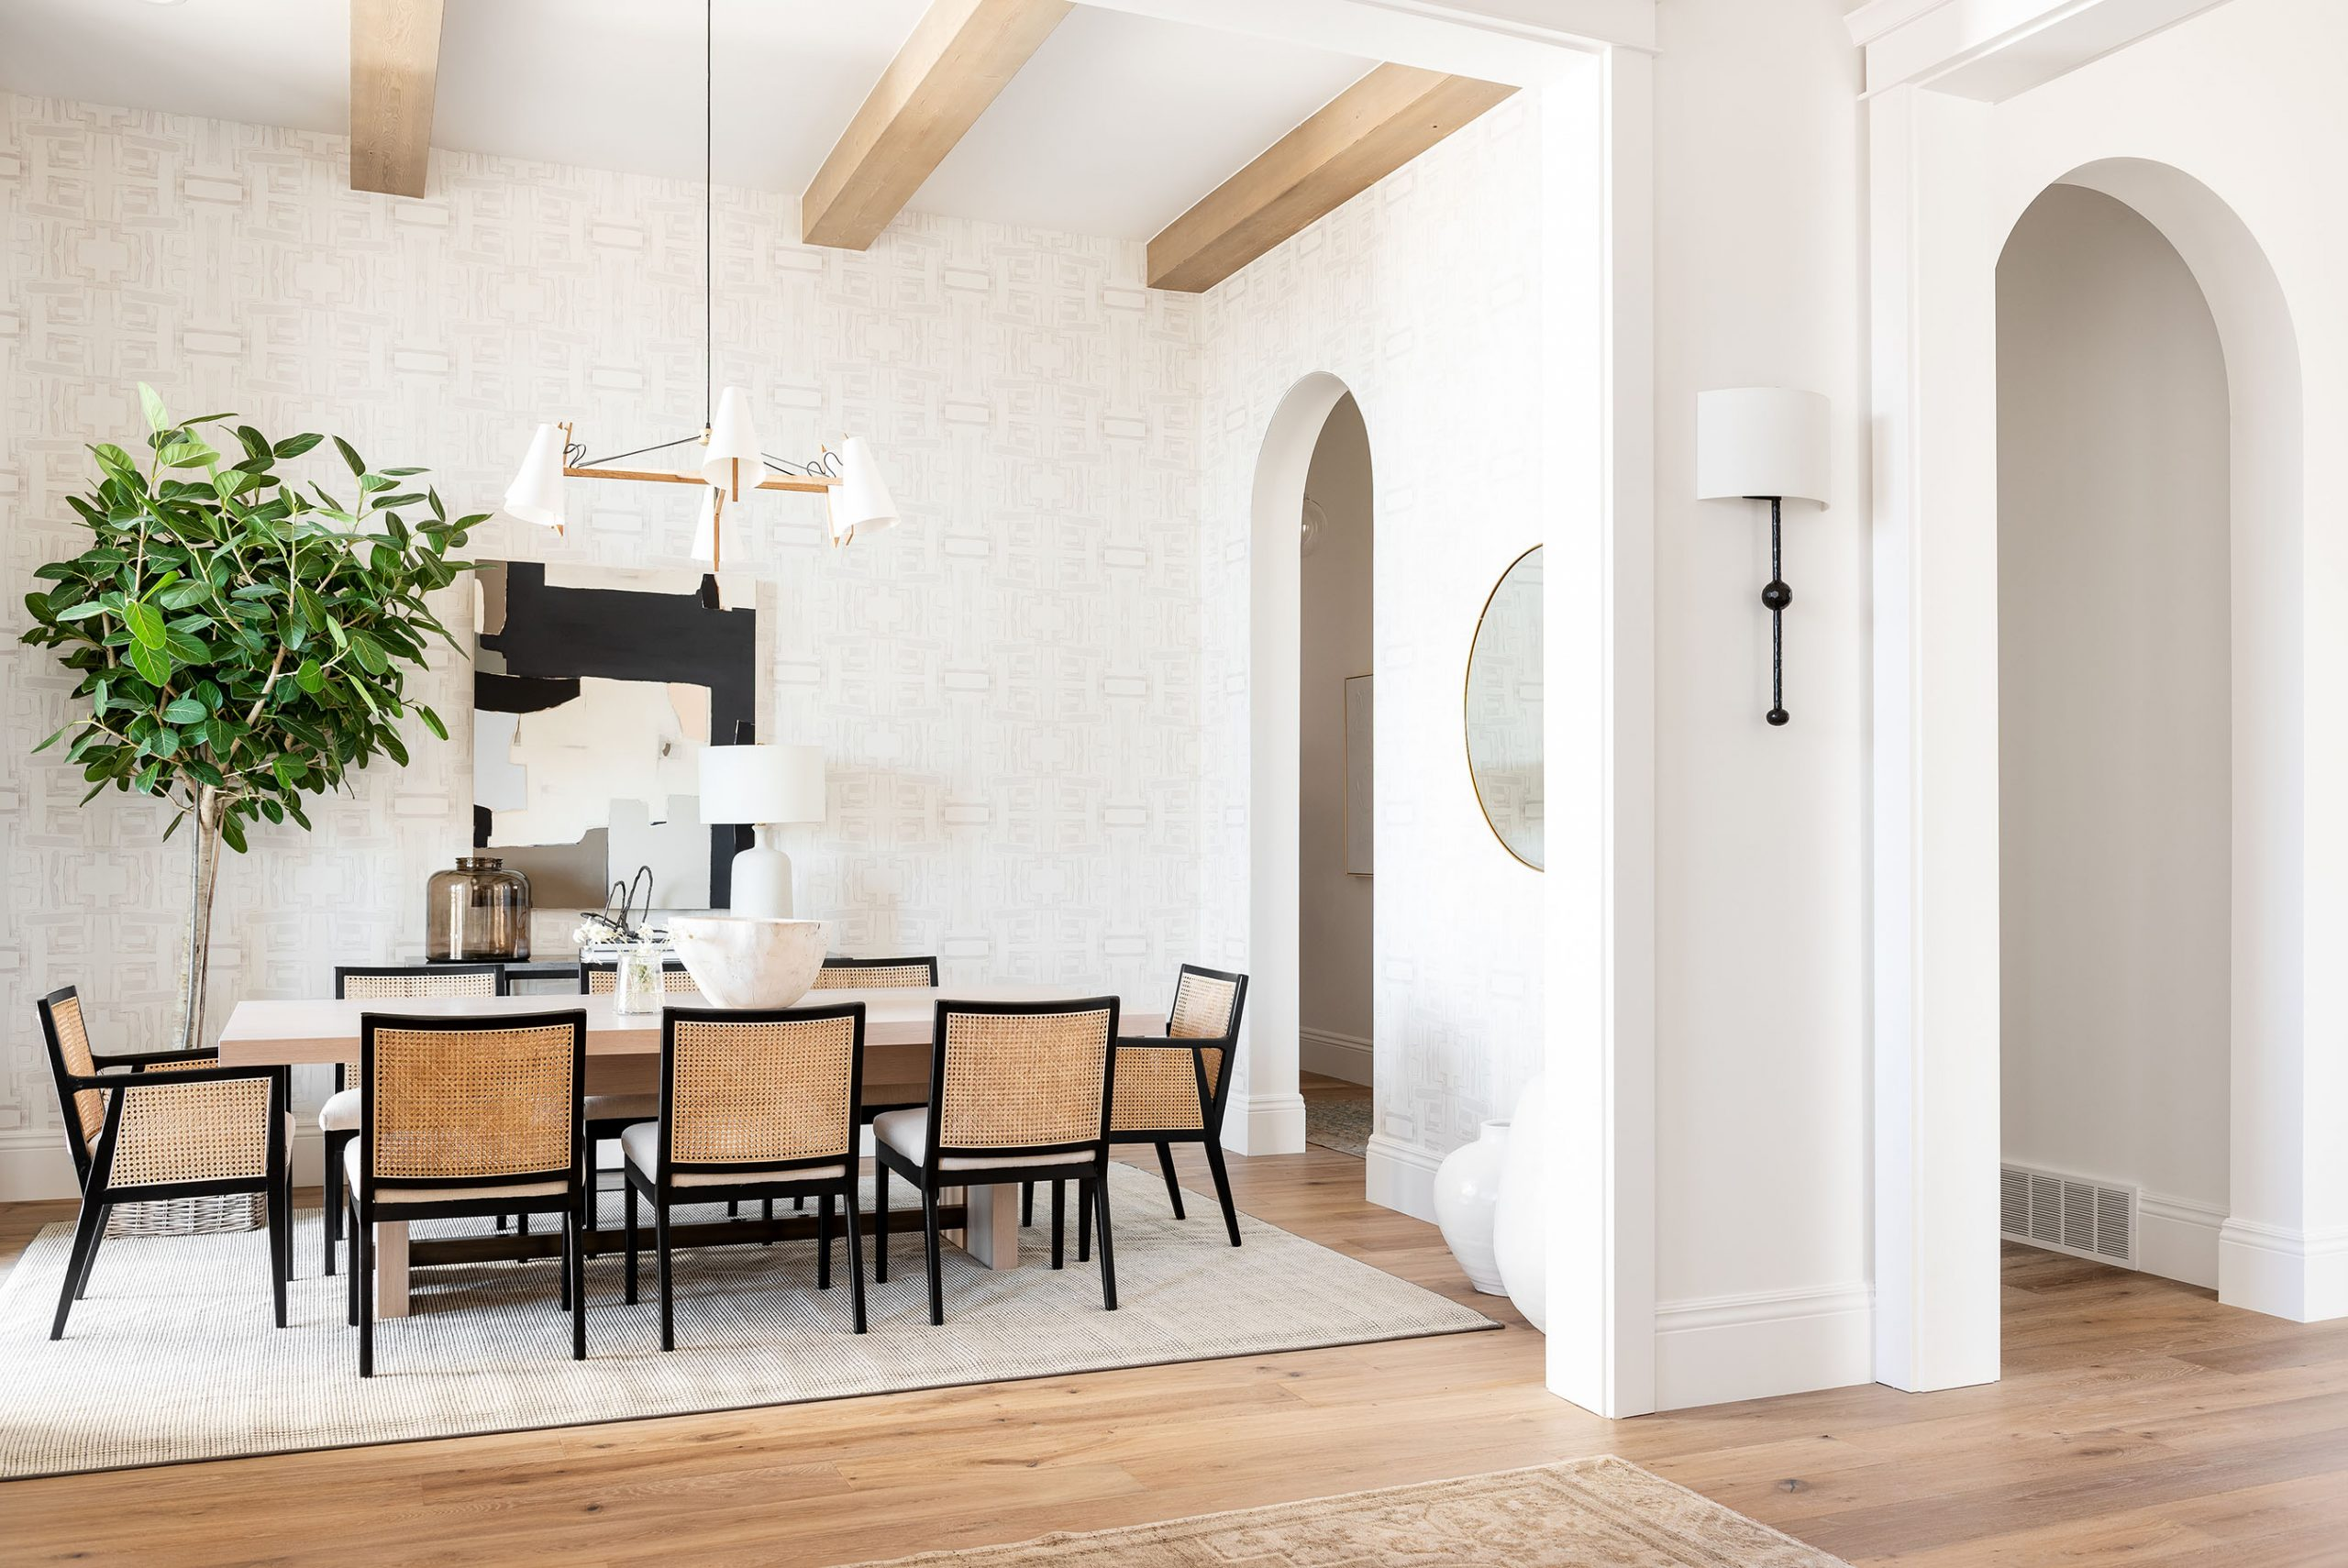 The Sunset House: Office & Dining Room